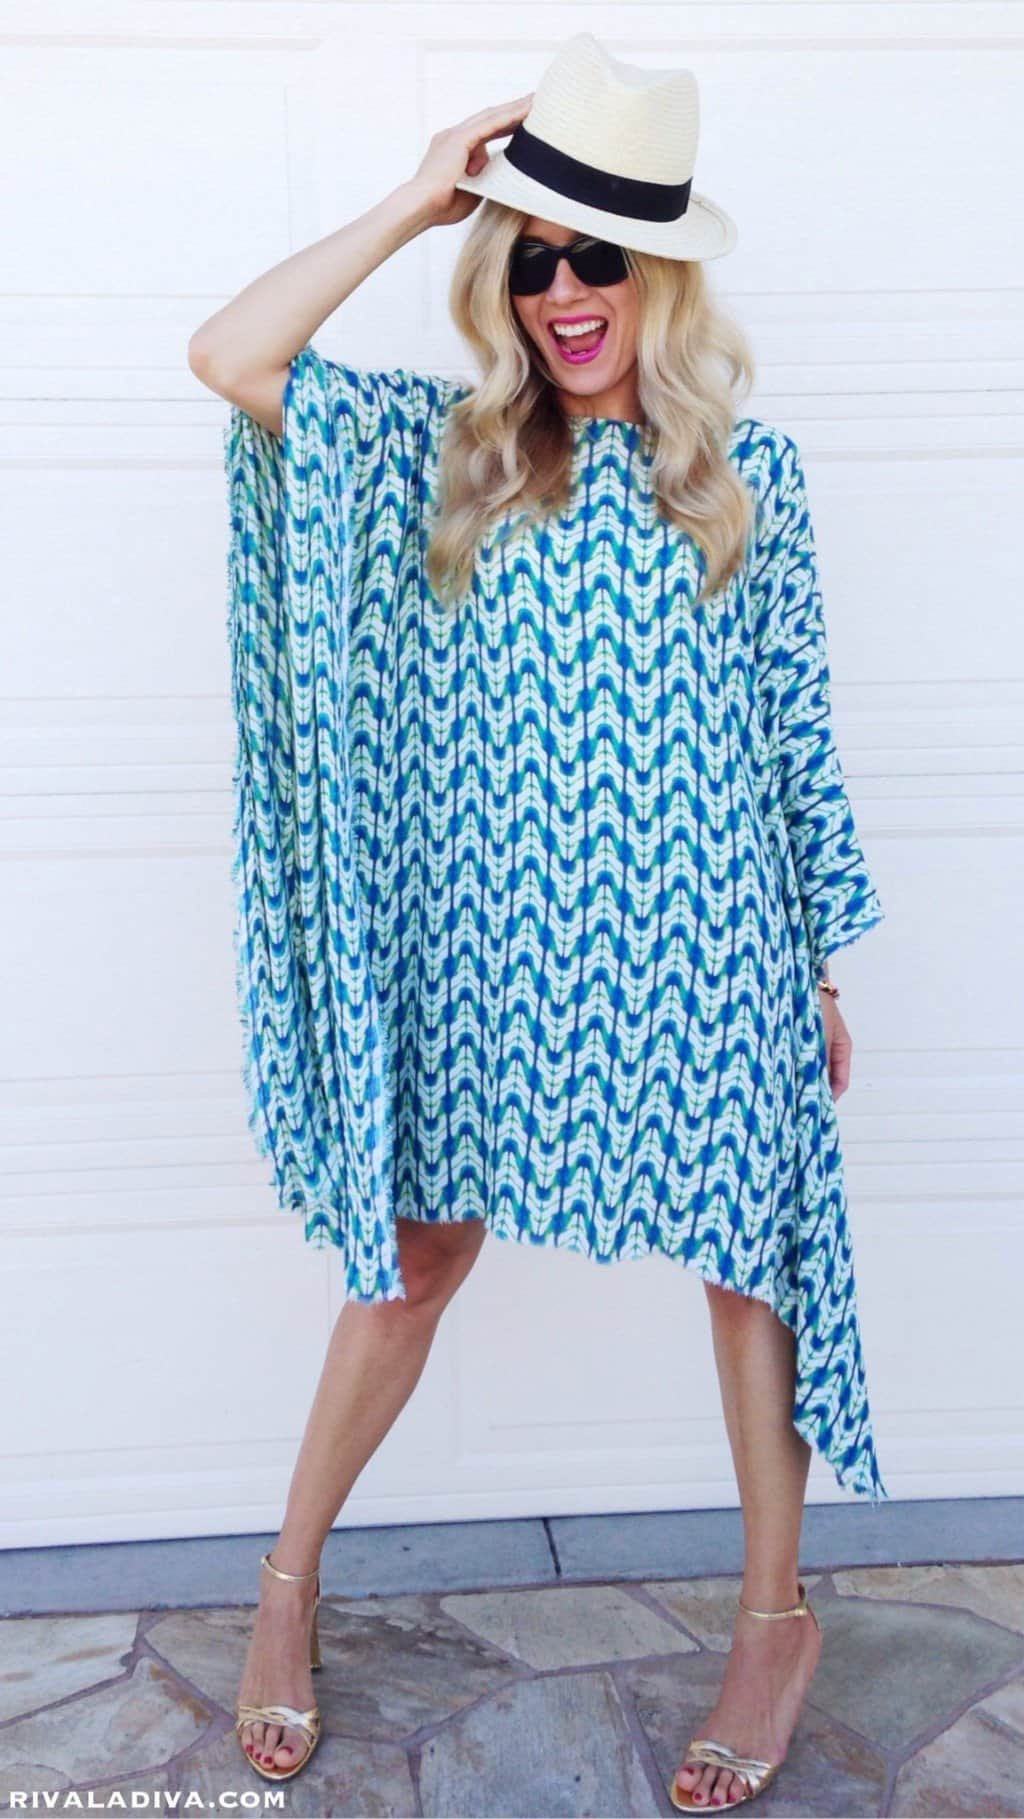 17 Easy And Stylish Beach Cover Ups For You To Make